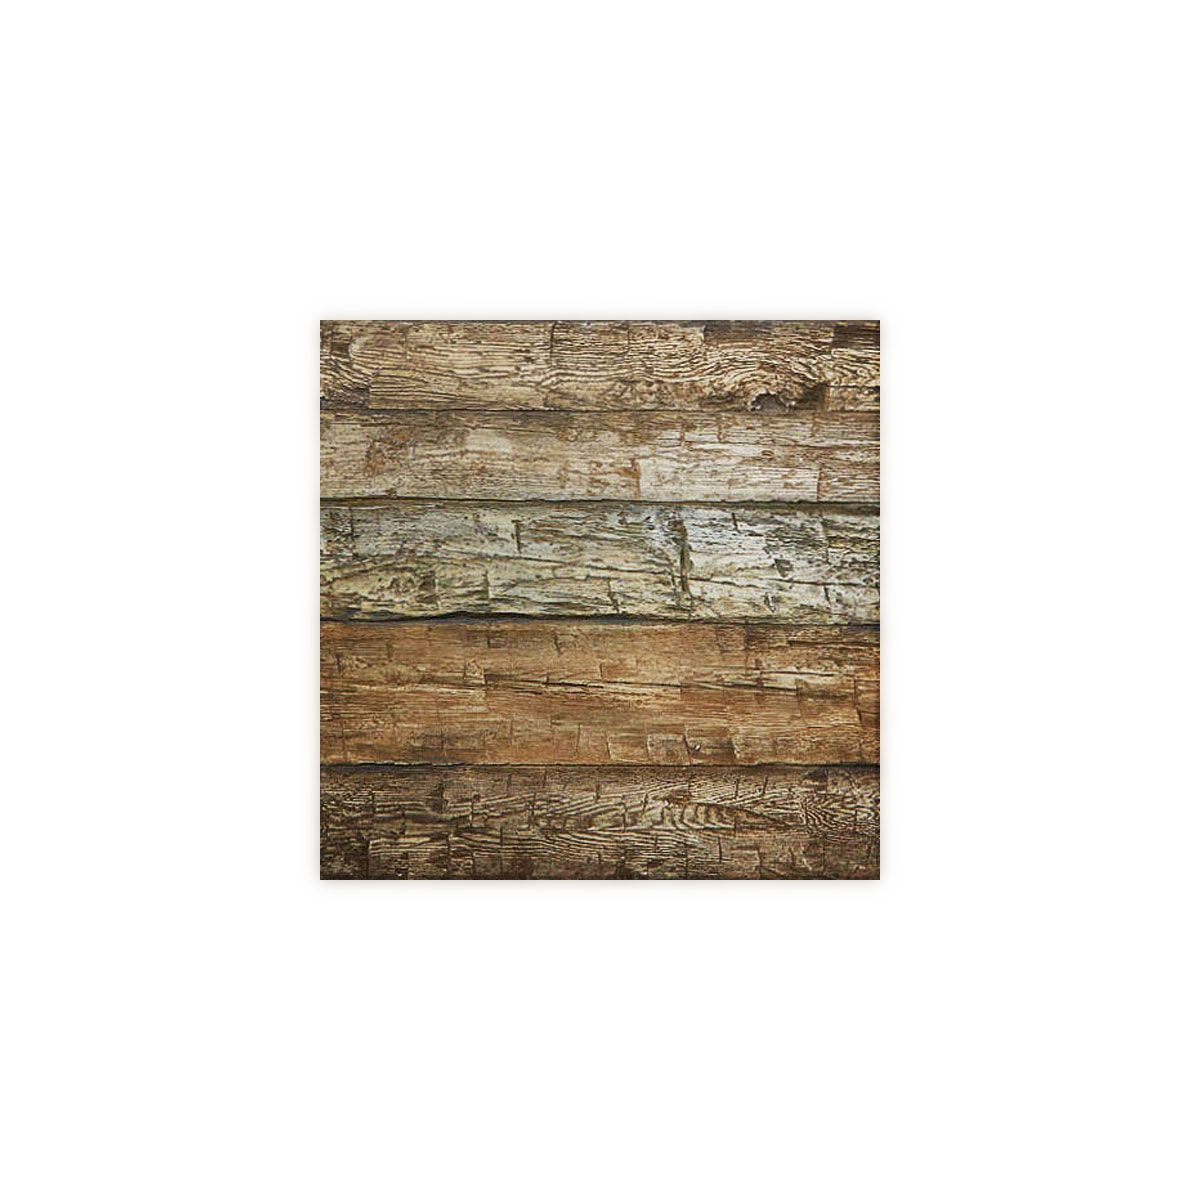 8 Inch W X 10 Inch H Hand Hewn Endurathane Faux Wood Siding Panel Sample Weathered Wood Panel Siding Wood Siding Faux Wood